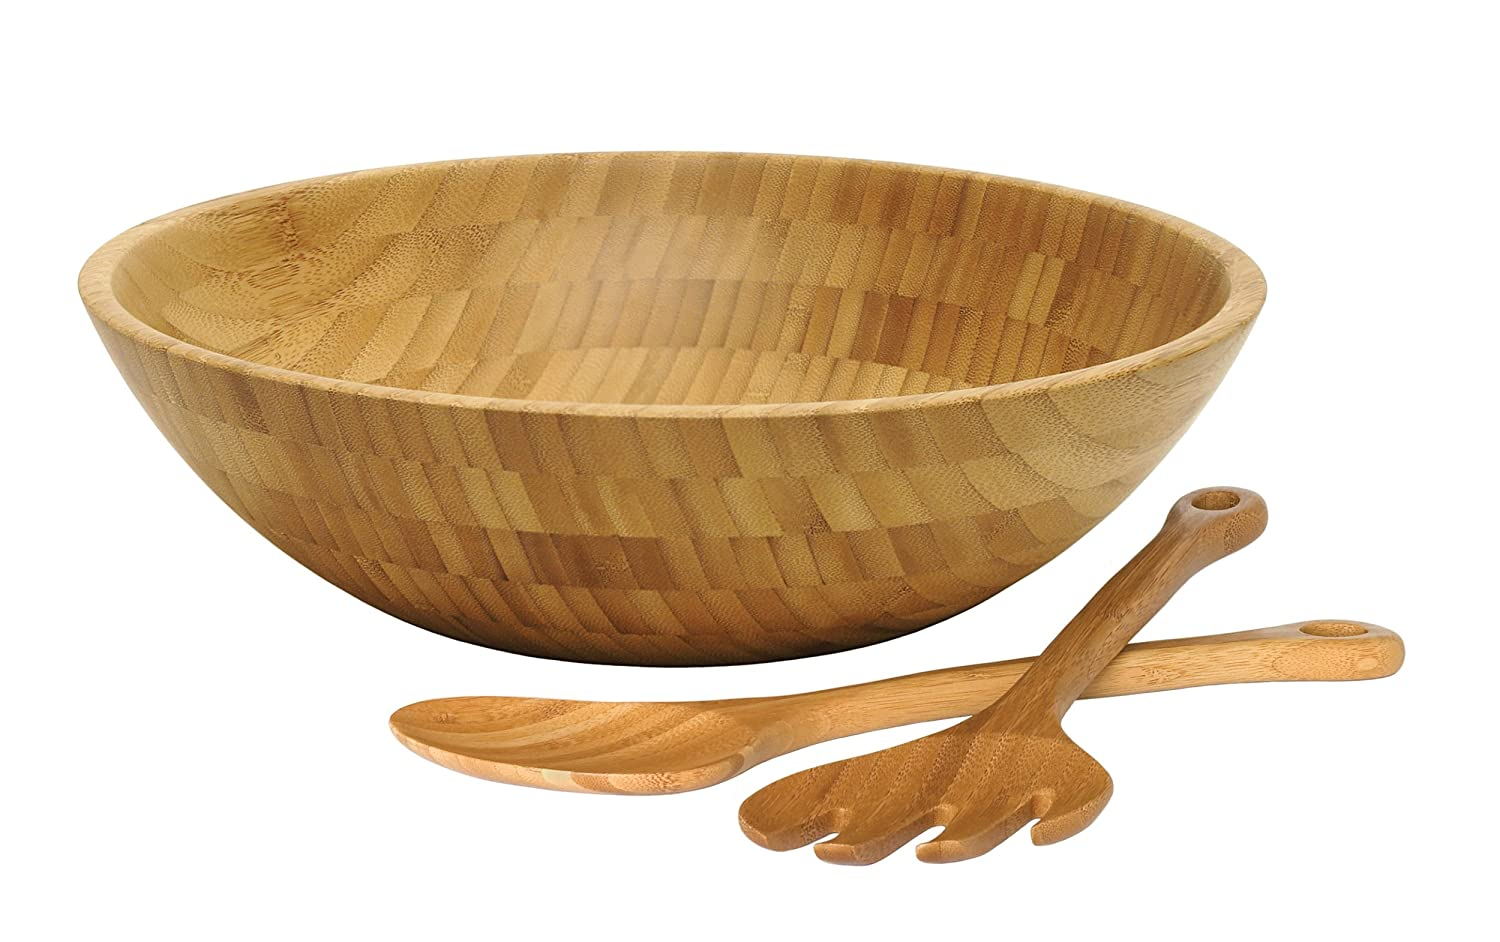 Lipper International 8204-3 Bamboo Wood Salad Bowl with 2 Server Utensils, Large, 14